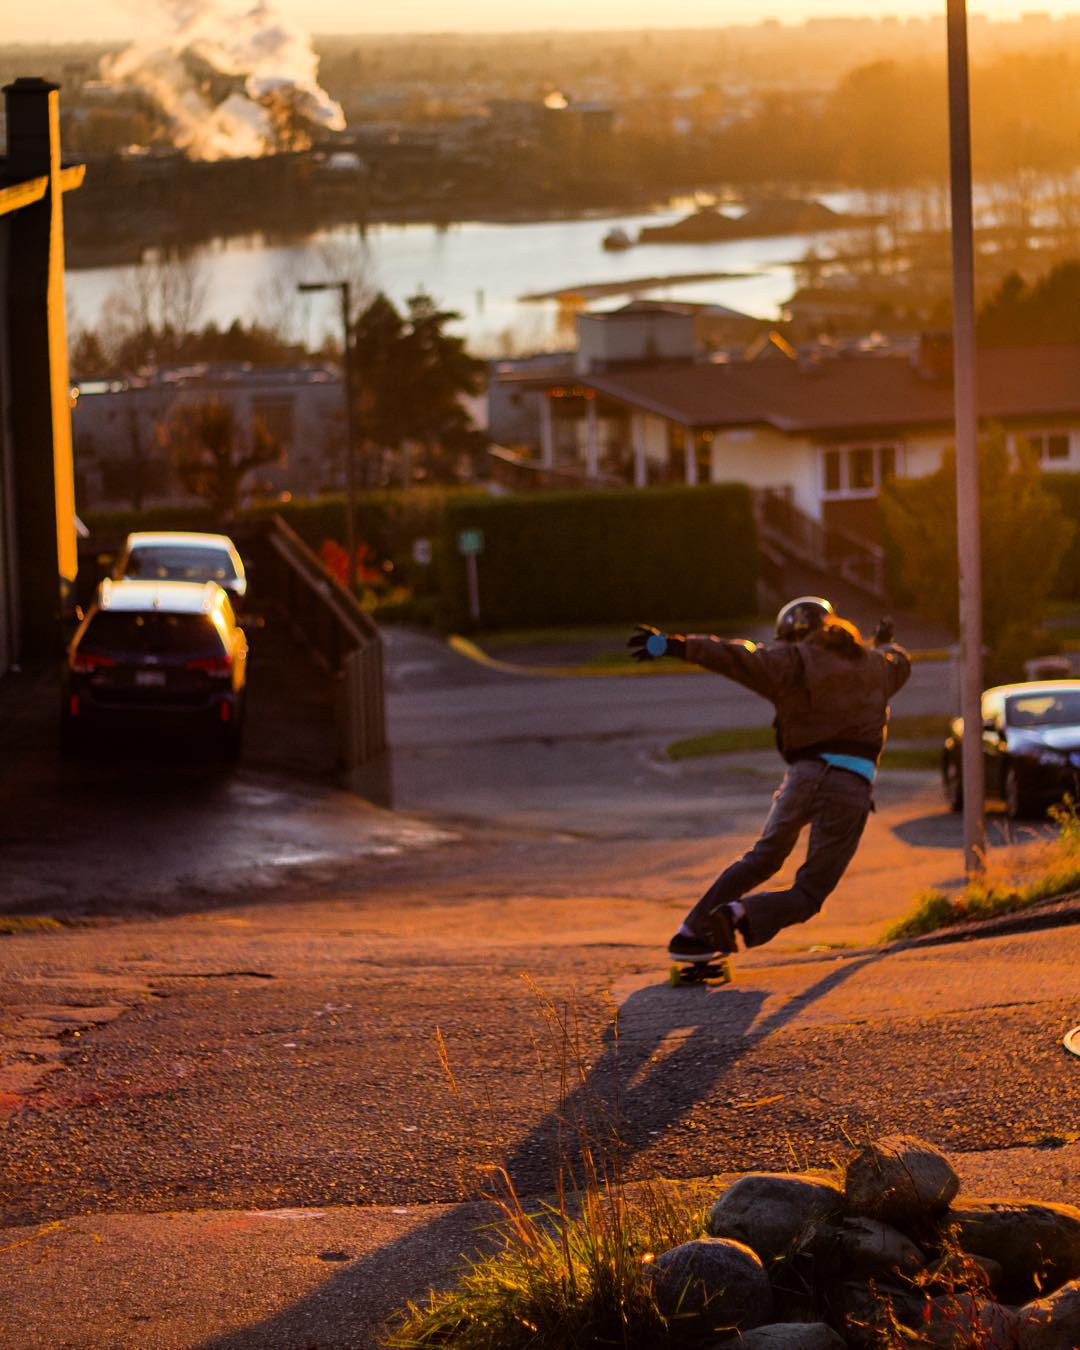 @dcarlsonskate gets down on a local chunder slab at golden hour